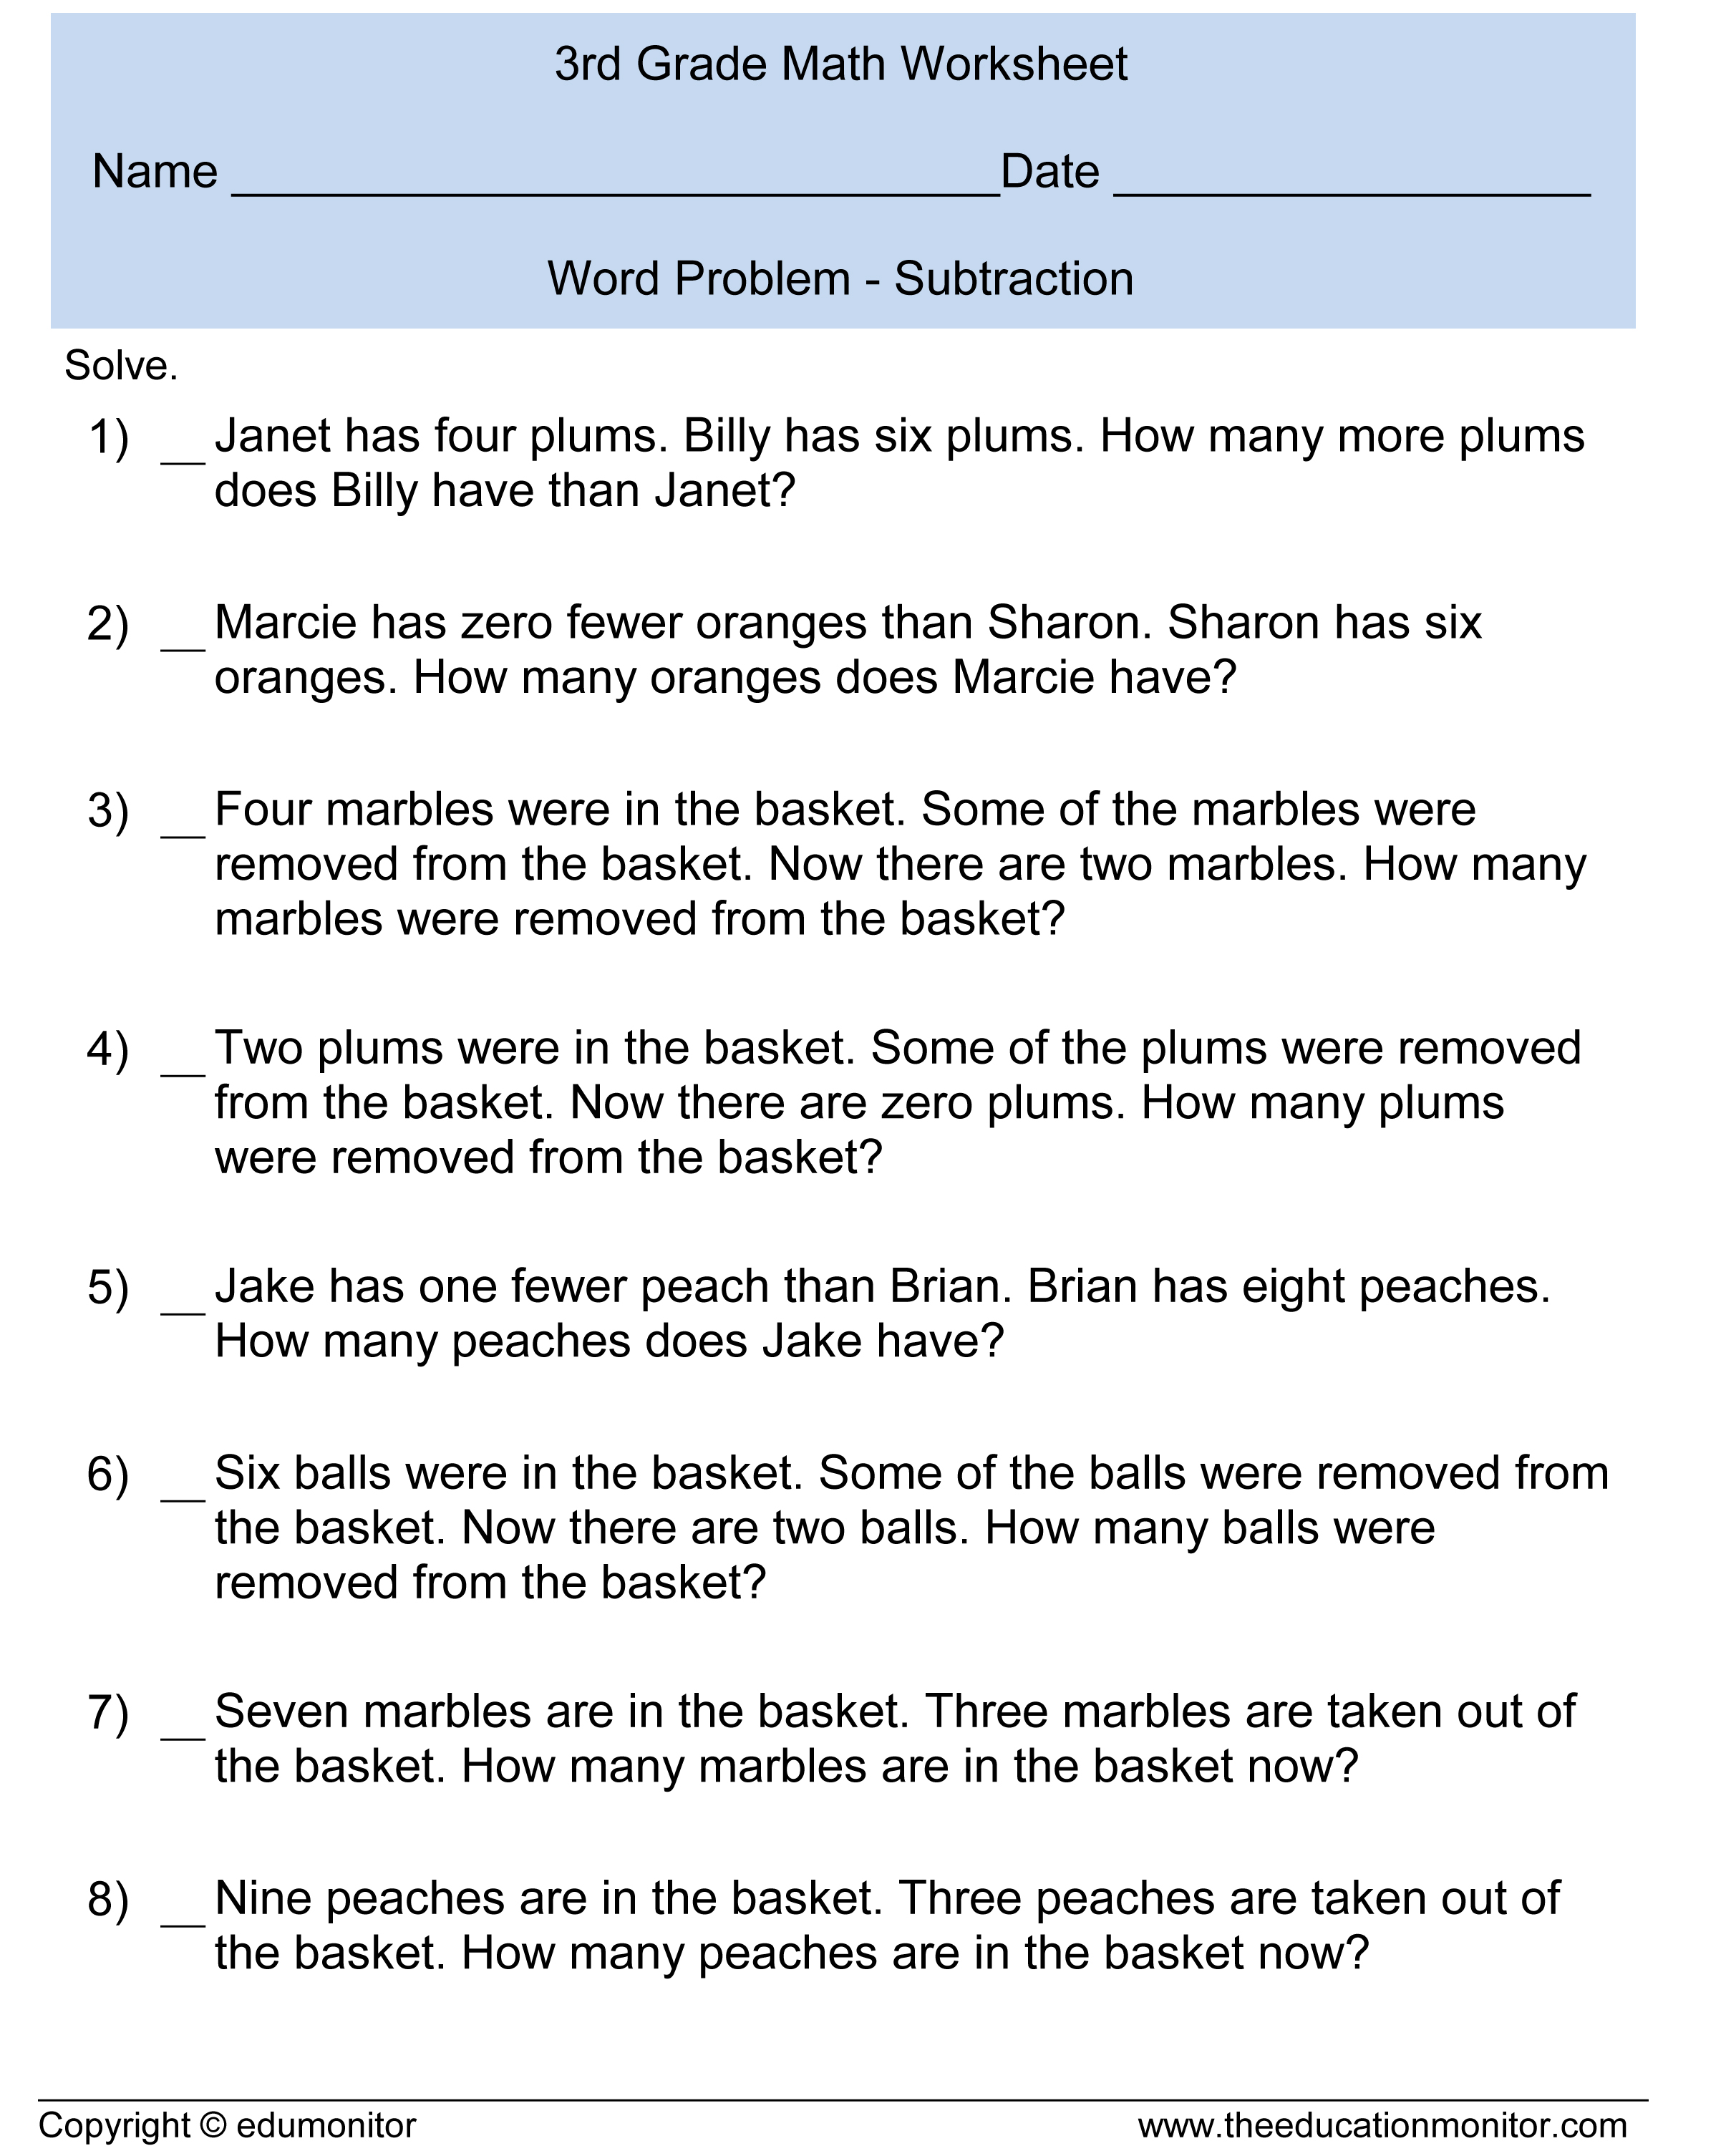 Addition And Subtraction Word Problems Worksheets 5th Grade Scalien – Subtraction Word Problems Worksheet